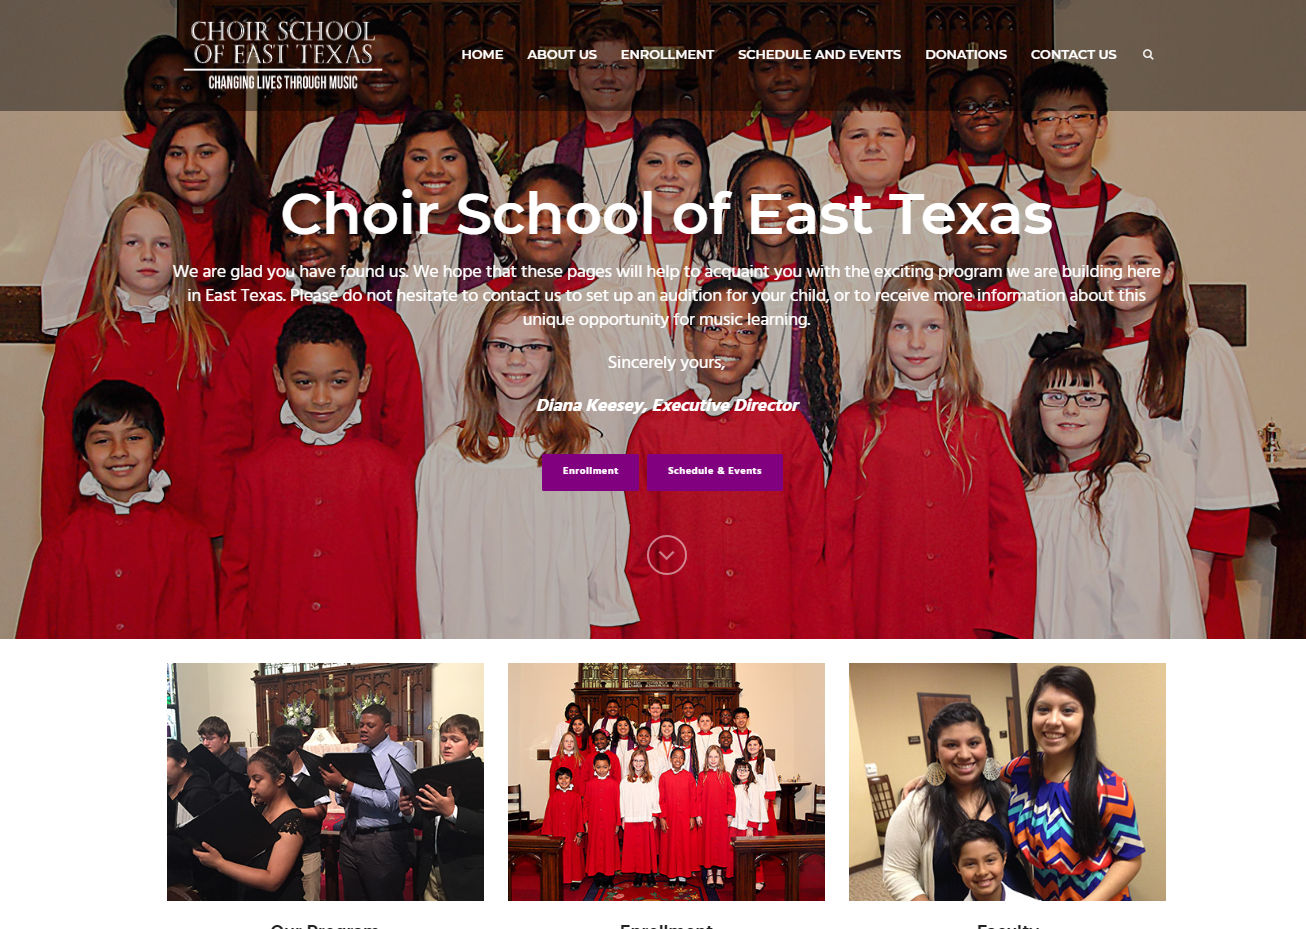 Choir School of East Texas